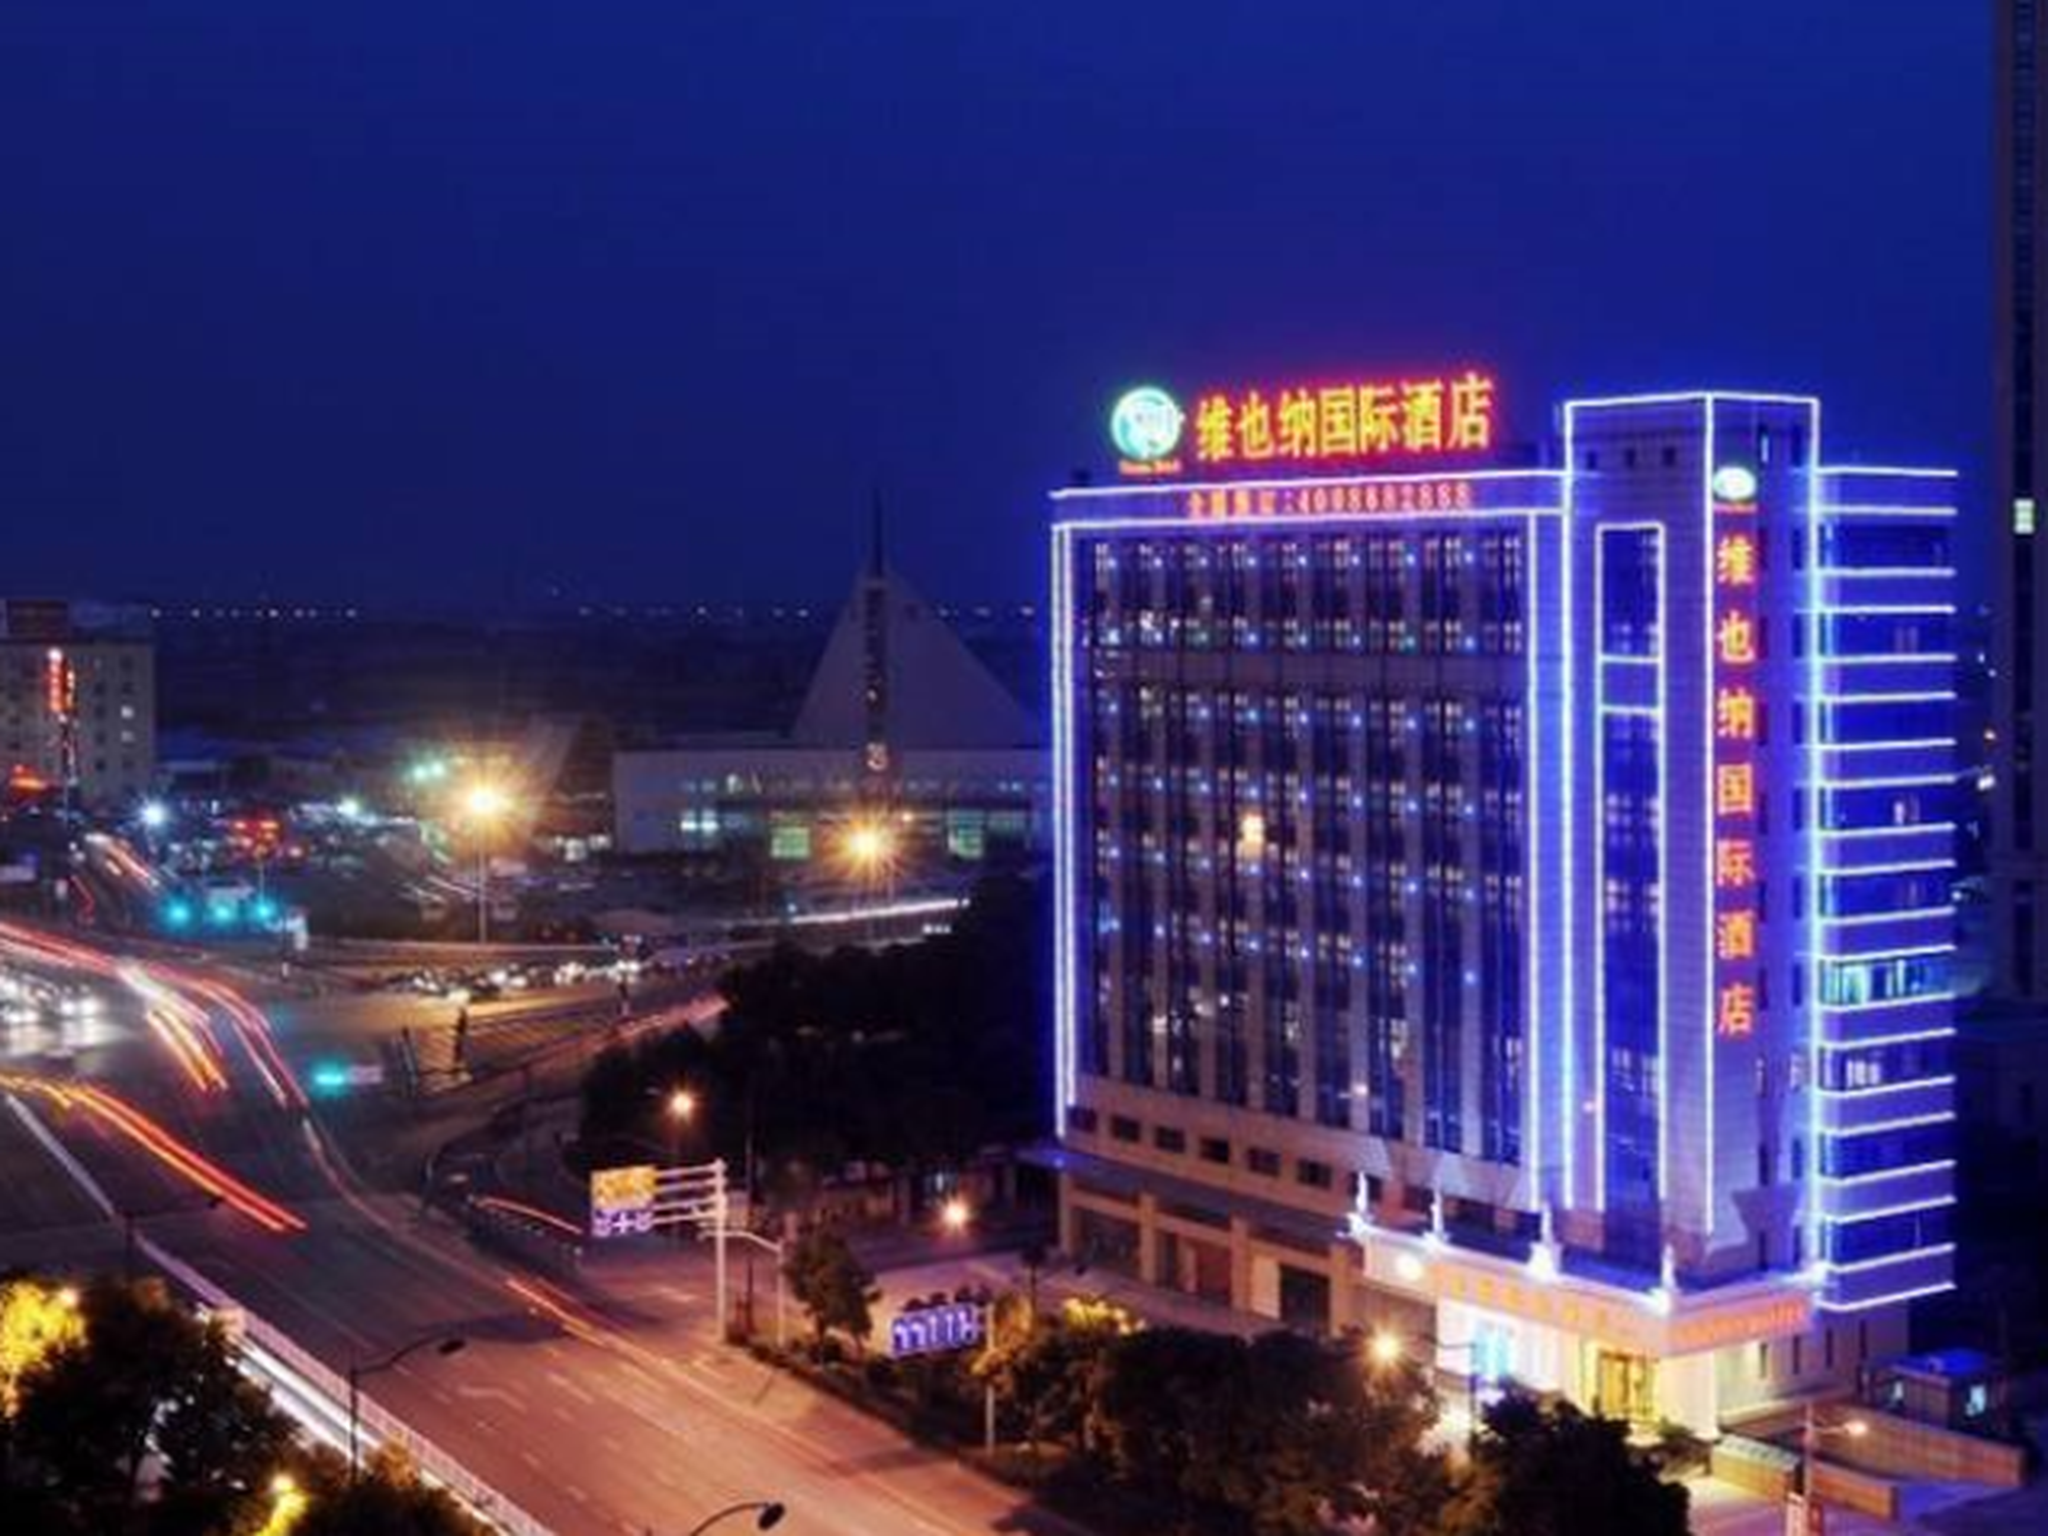 Vienna Hotel Shaoxing Passenger branch, Shaoxing